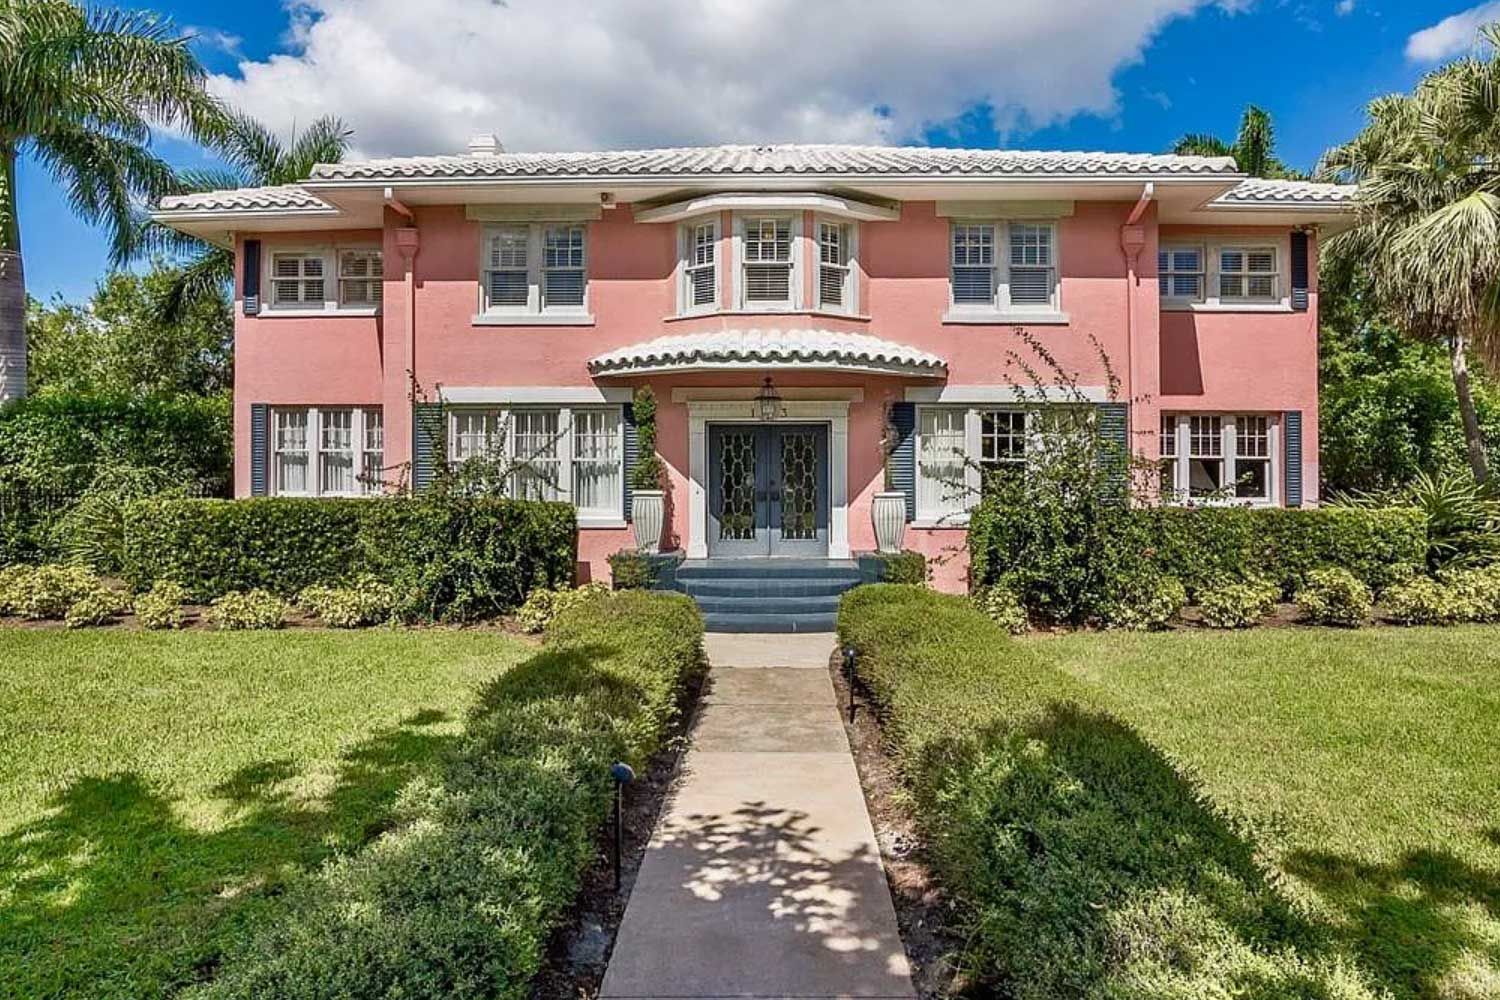 10 Beautiful Historic Houses For Sale In Southwest Florida Right